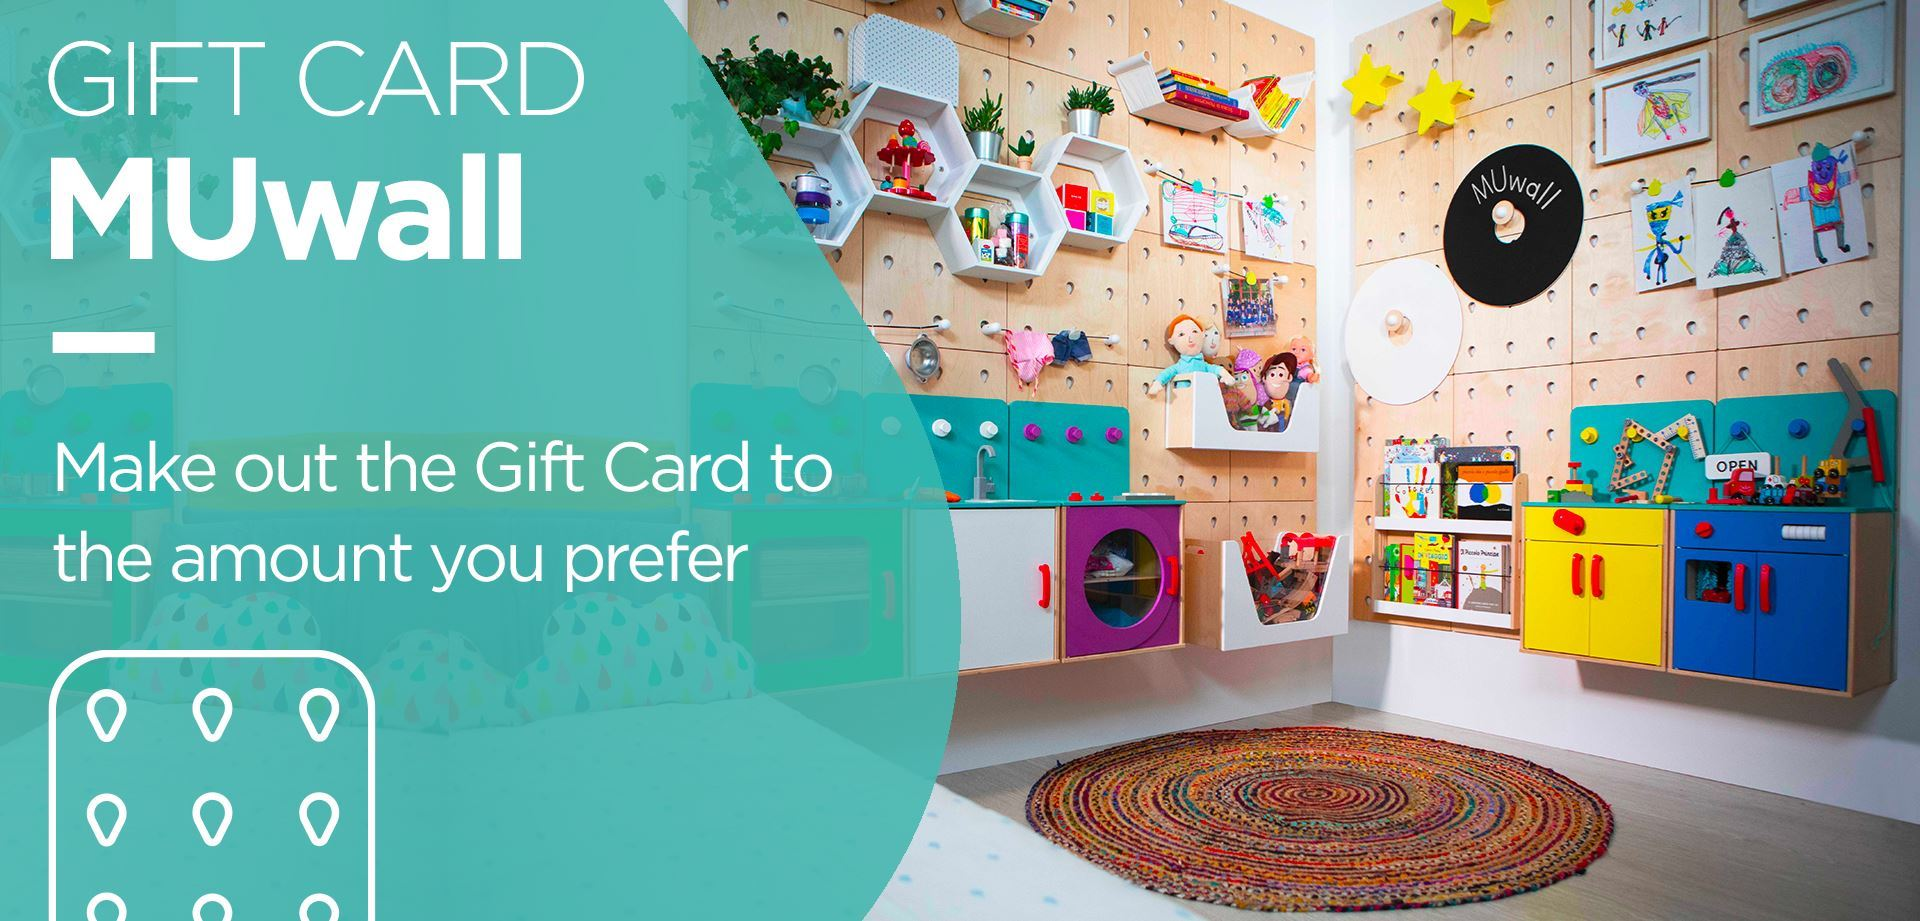 Gift Card for MUwall